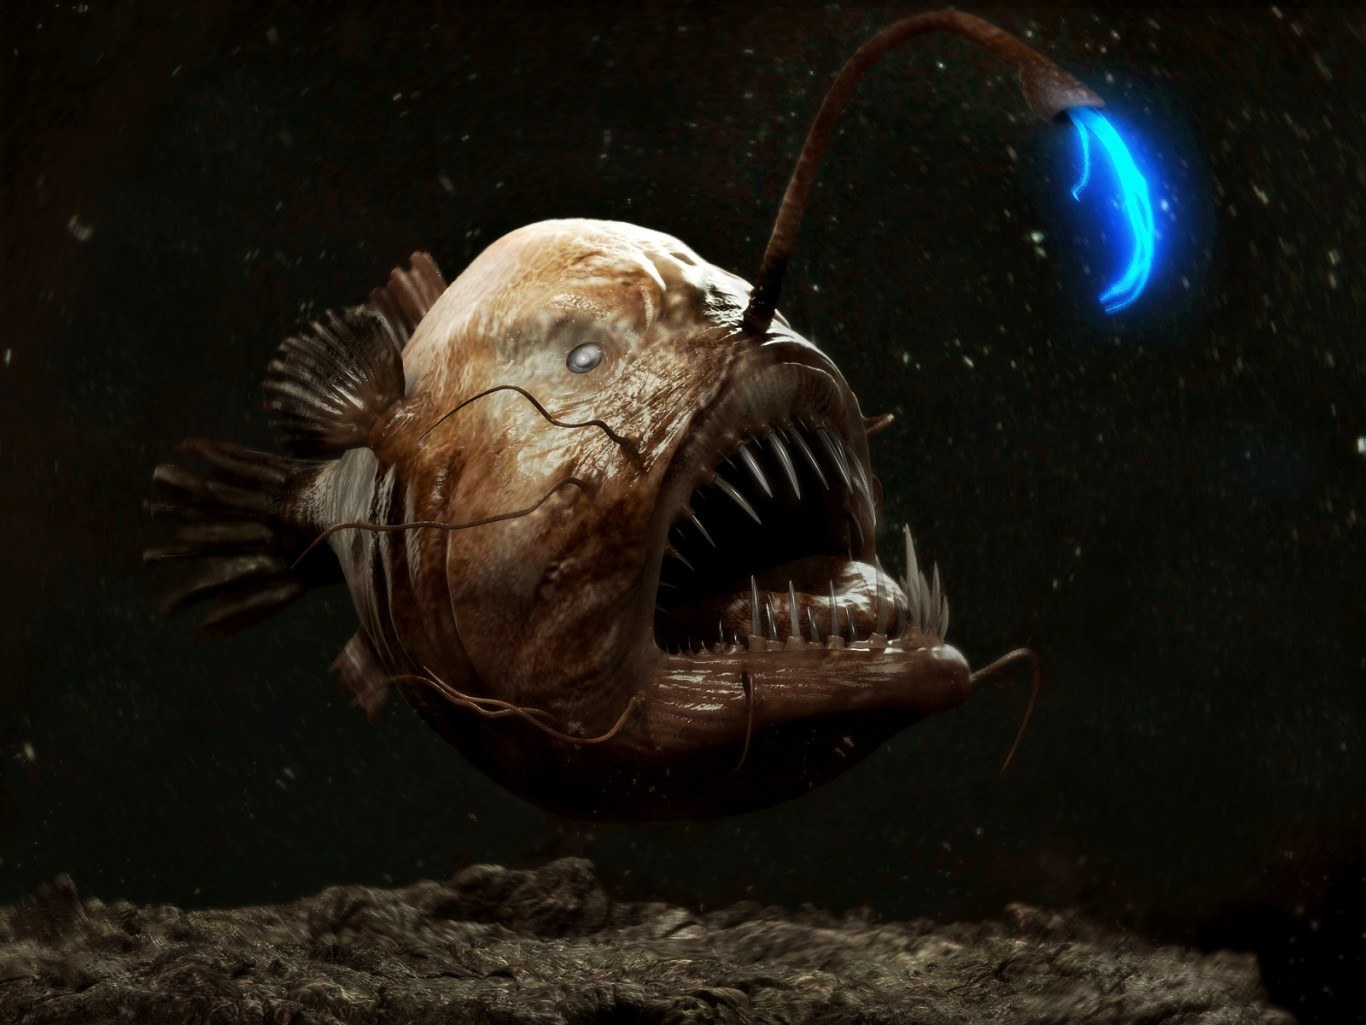 SIX DEEP SEA DWELLERS THAT LOVE TO LIGHT UP | Stories | The Coral ... for Anglerfish Light  104xkb